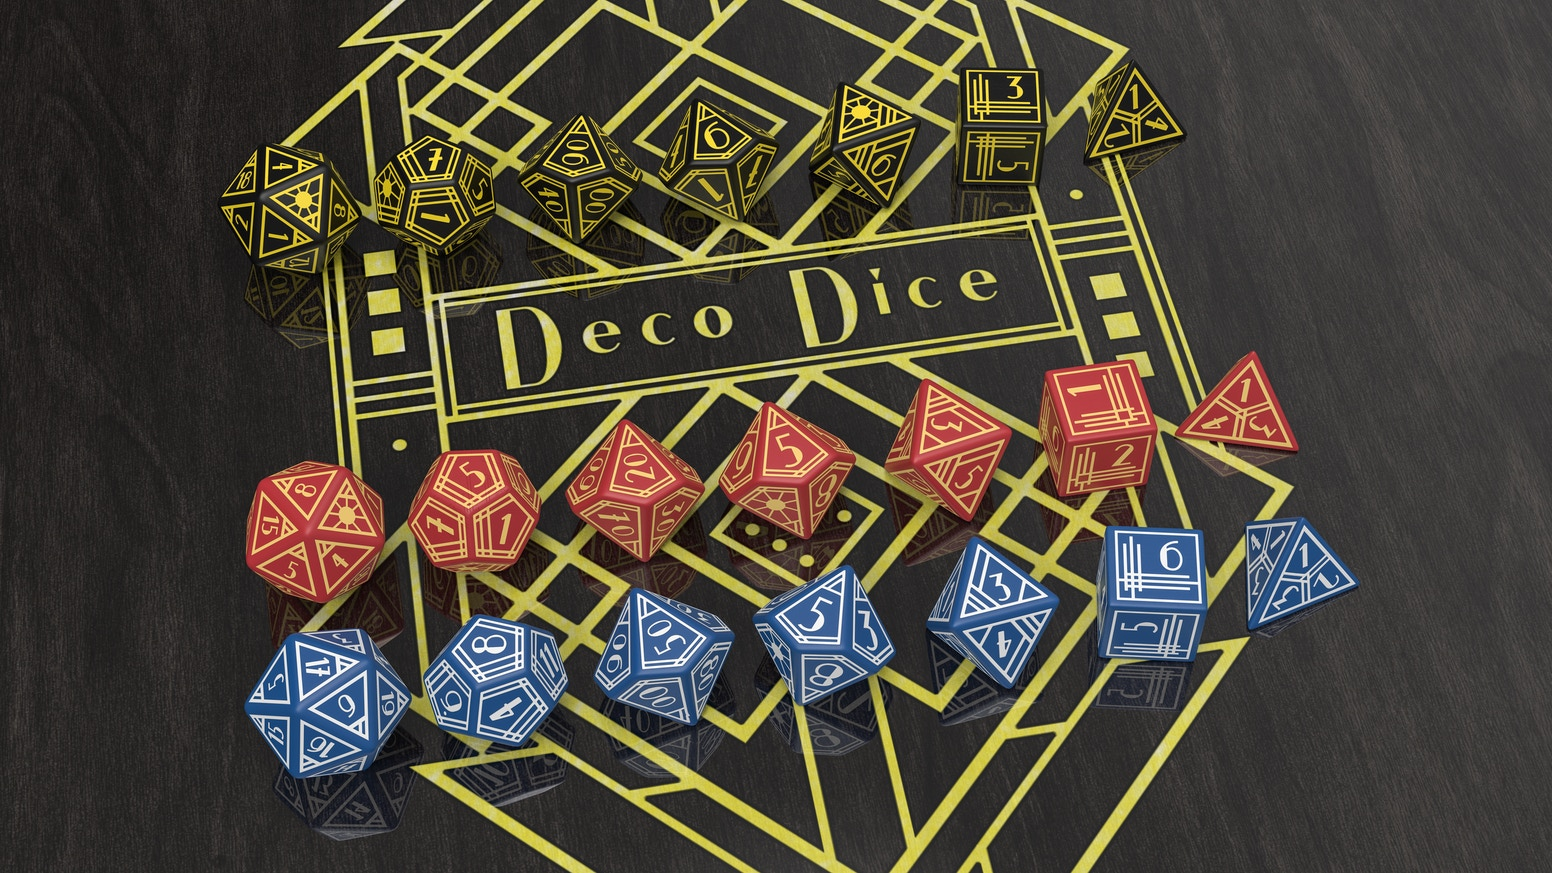 From the Golden Age of the parlor game comes Deco Dice. This luxurious, elegant polyhedral dice set ensures you always roll with style.